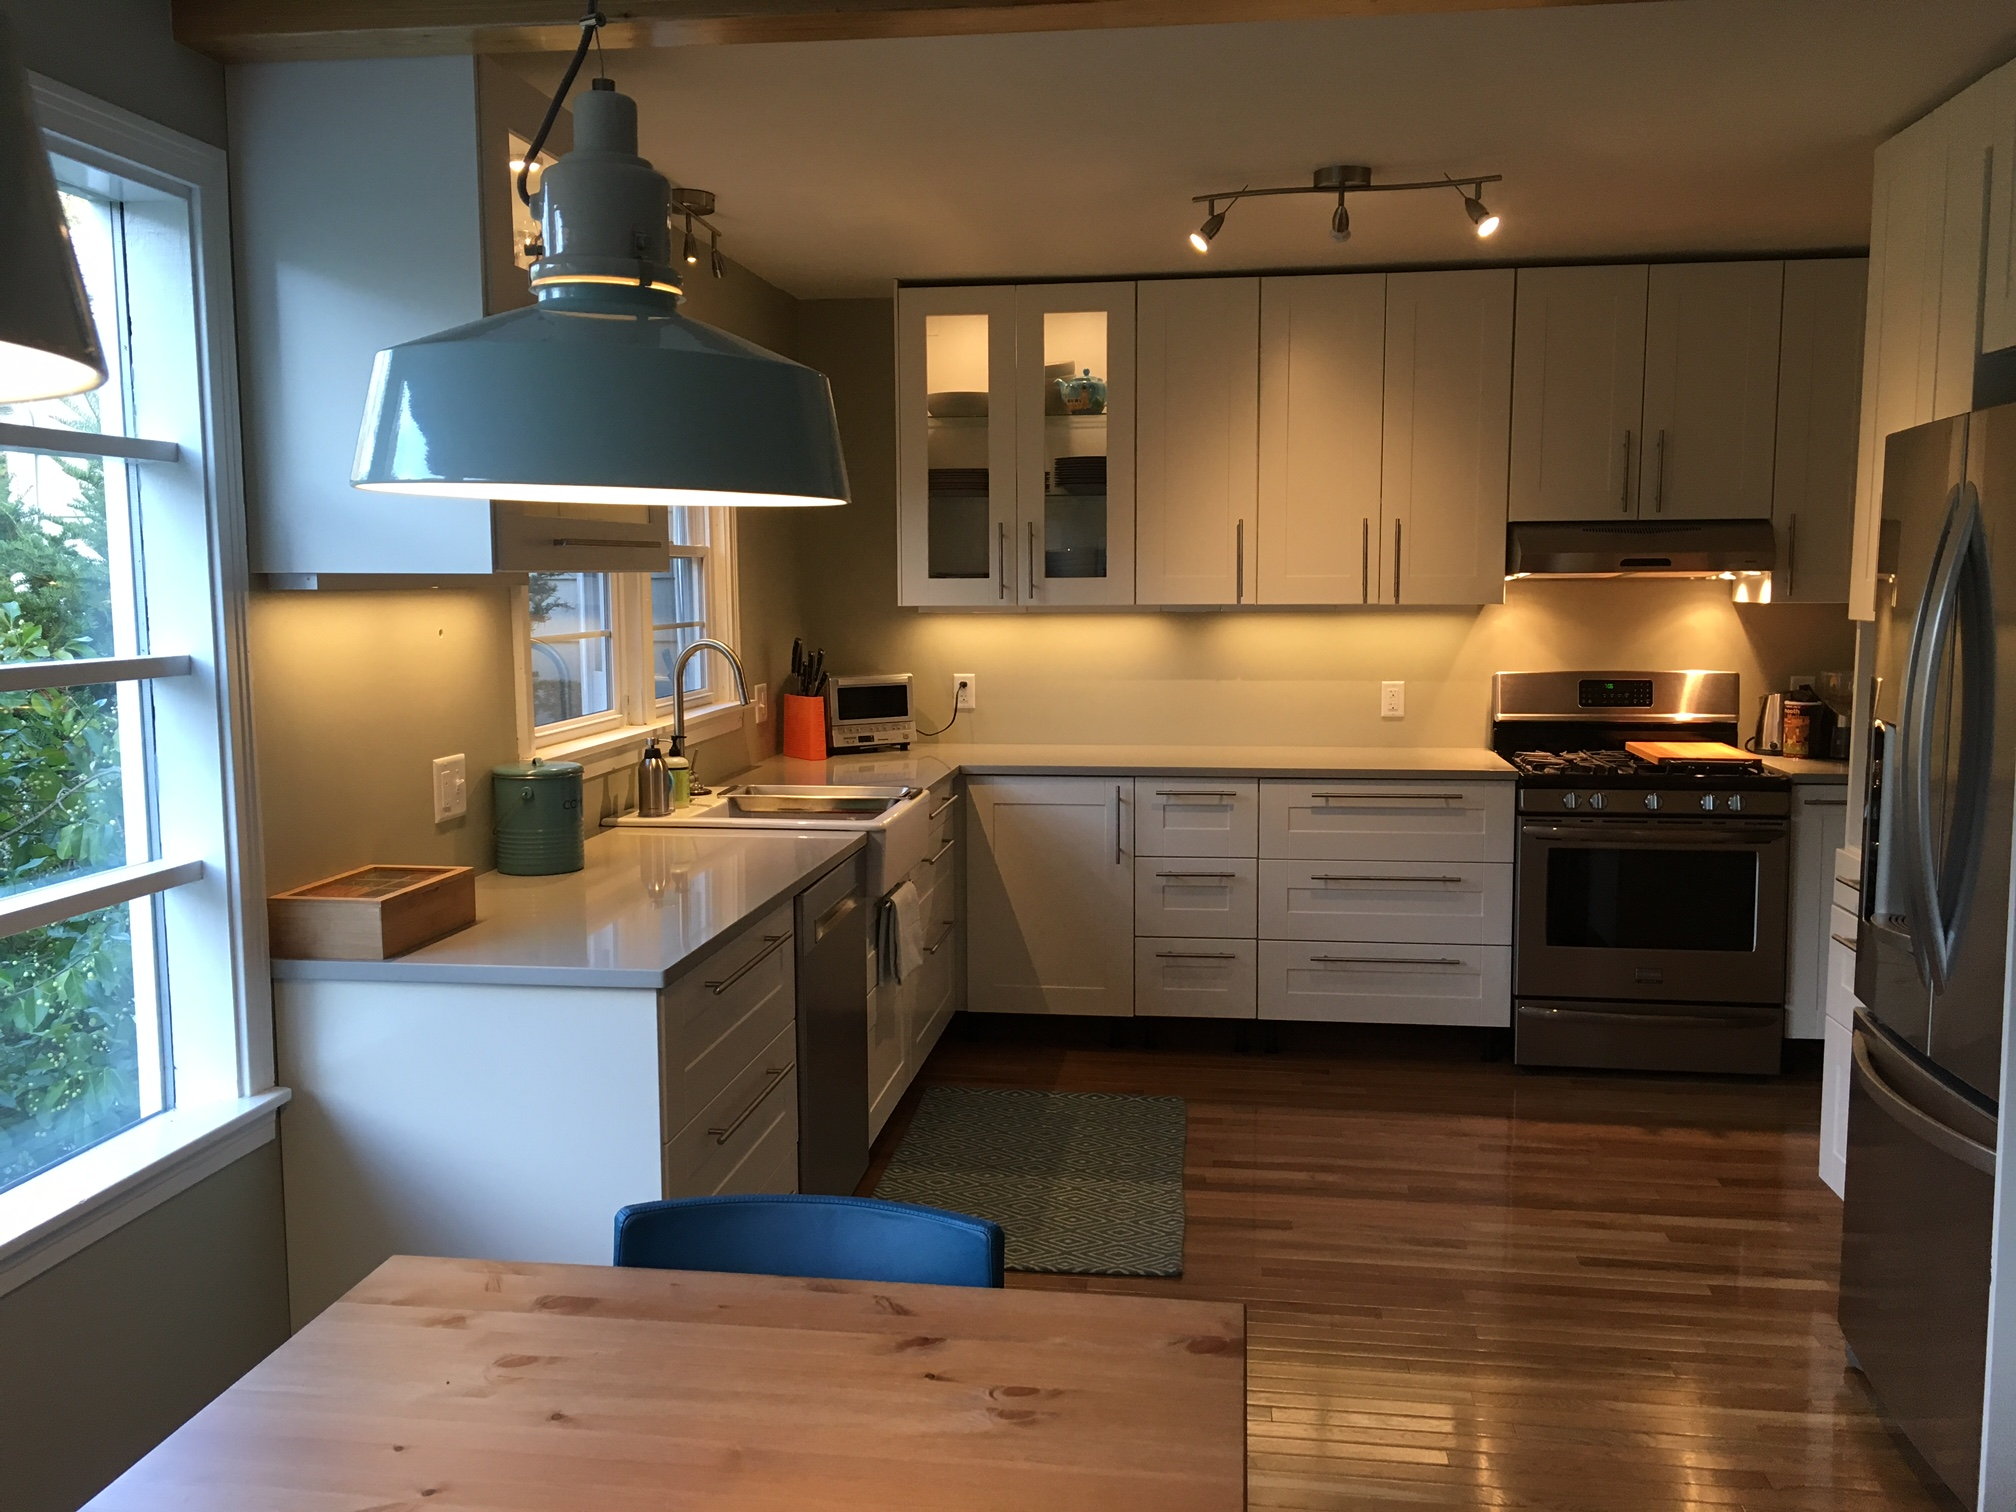 A gorgeous ikea kitchen renovation in upstate new york for Ikea installation nyc